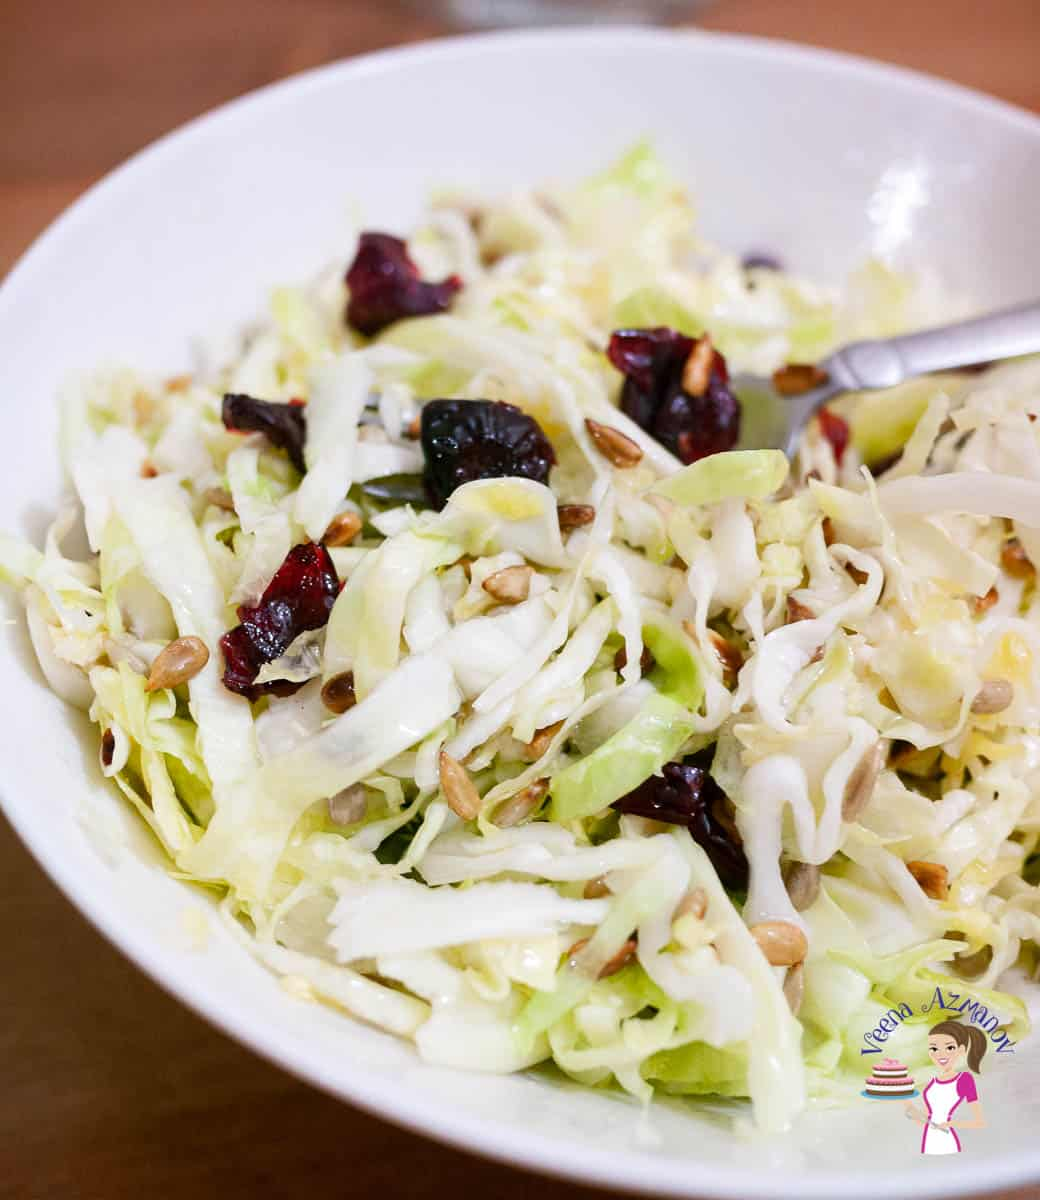 A ceramic bowl with cabbage salad